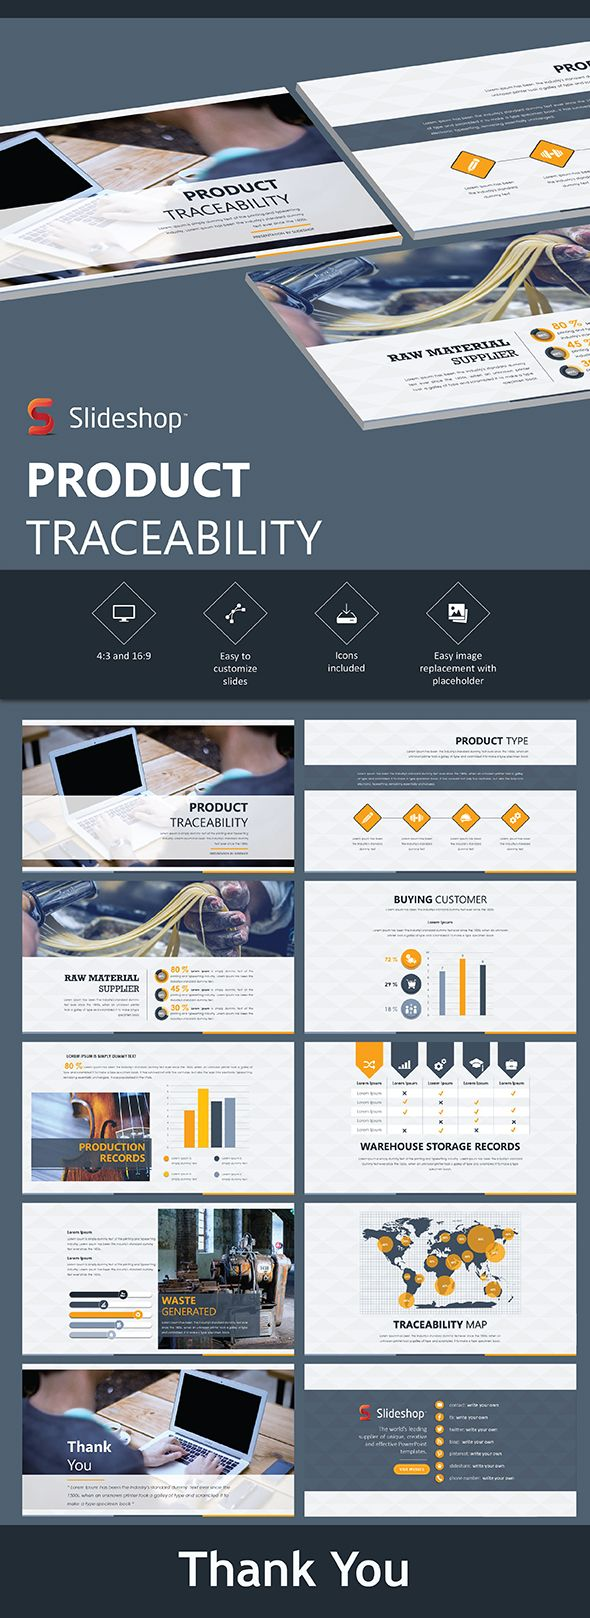 Product Traceability - PowerPoint Templates Presentation Templates Download here: https://graphicriver.net/item/product-traceability/19853570?ref=classicdesignp